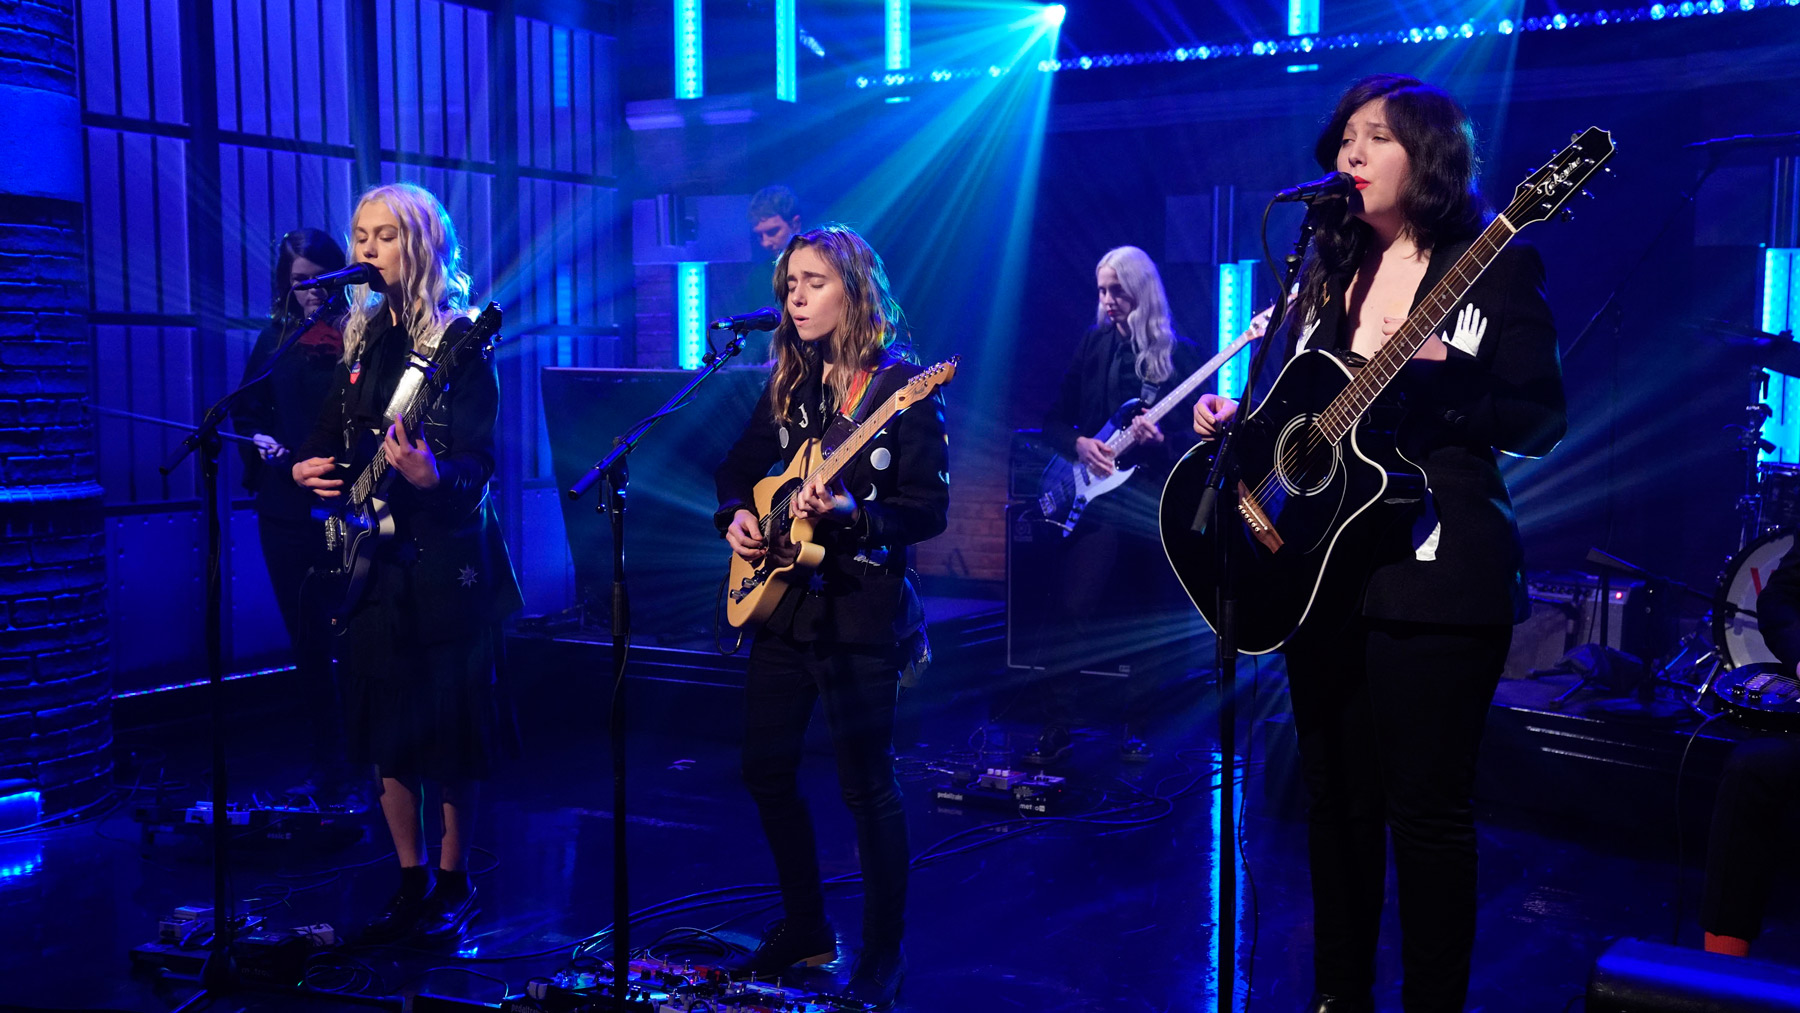 LATE NIGHT WITH SETH MEYERS -- Episode 753 -- Pictured: (l-r) Phoebe Bridges, Julien Baker and Lucy Dacus of boygenius perform on November 5, 2018 -- (Photo by: Lloyd Bishop/NBCU Photo Bank/NBCUniversal via Getty Images via Getty Images)